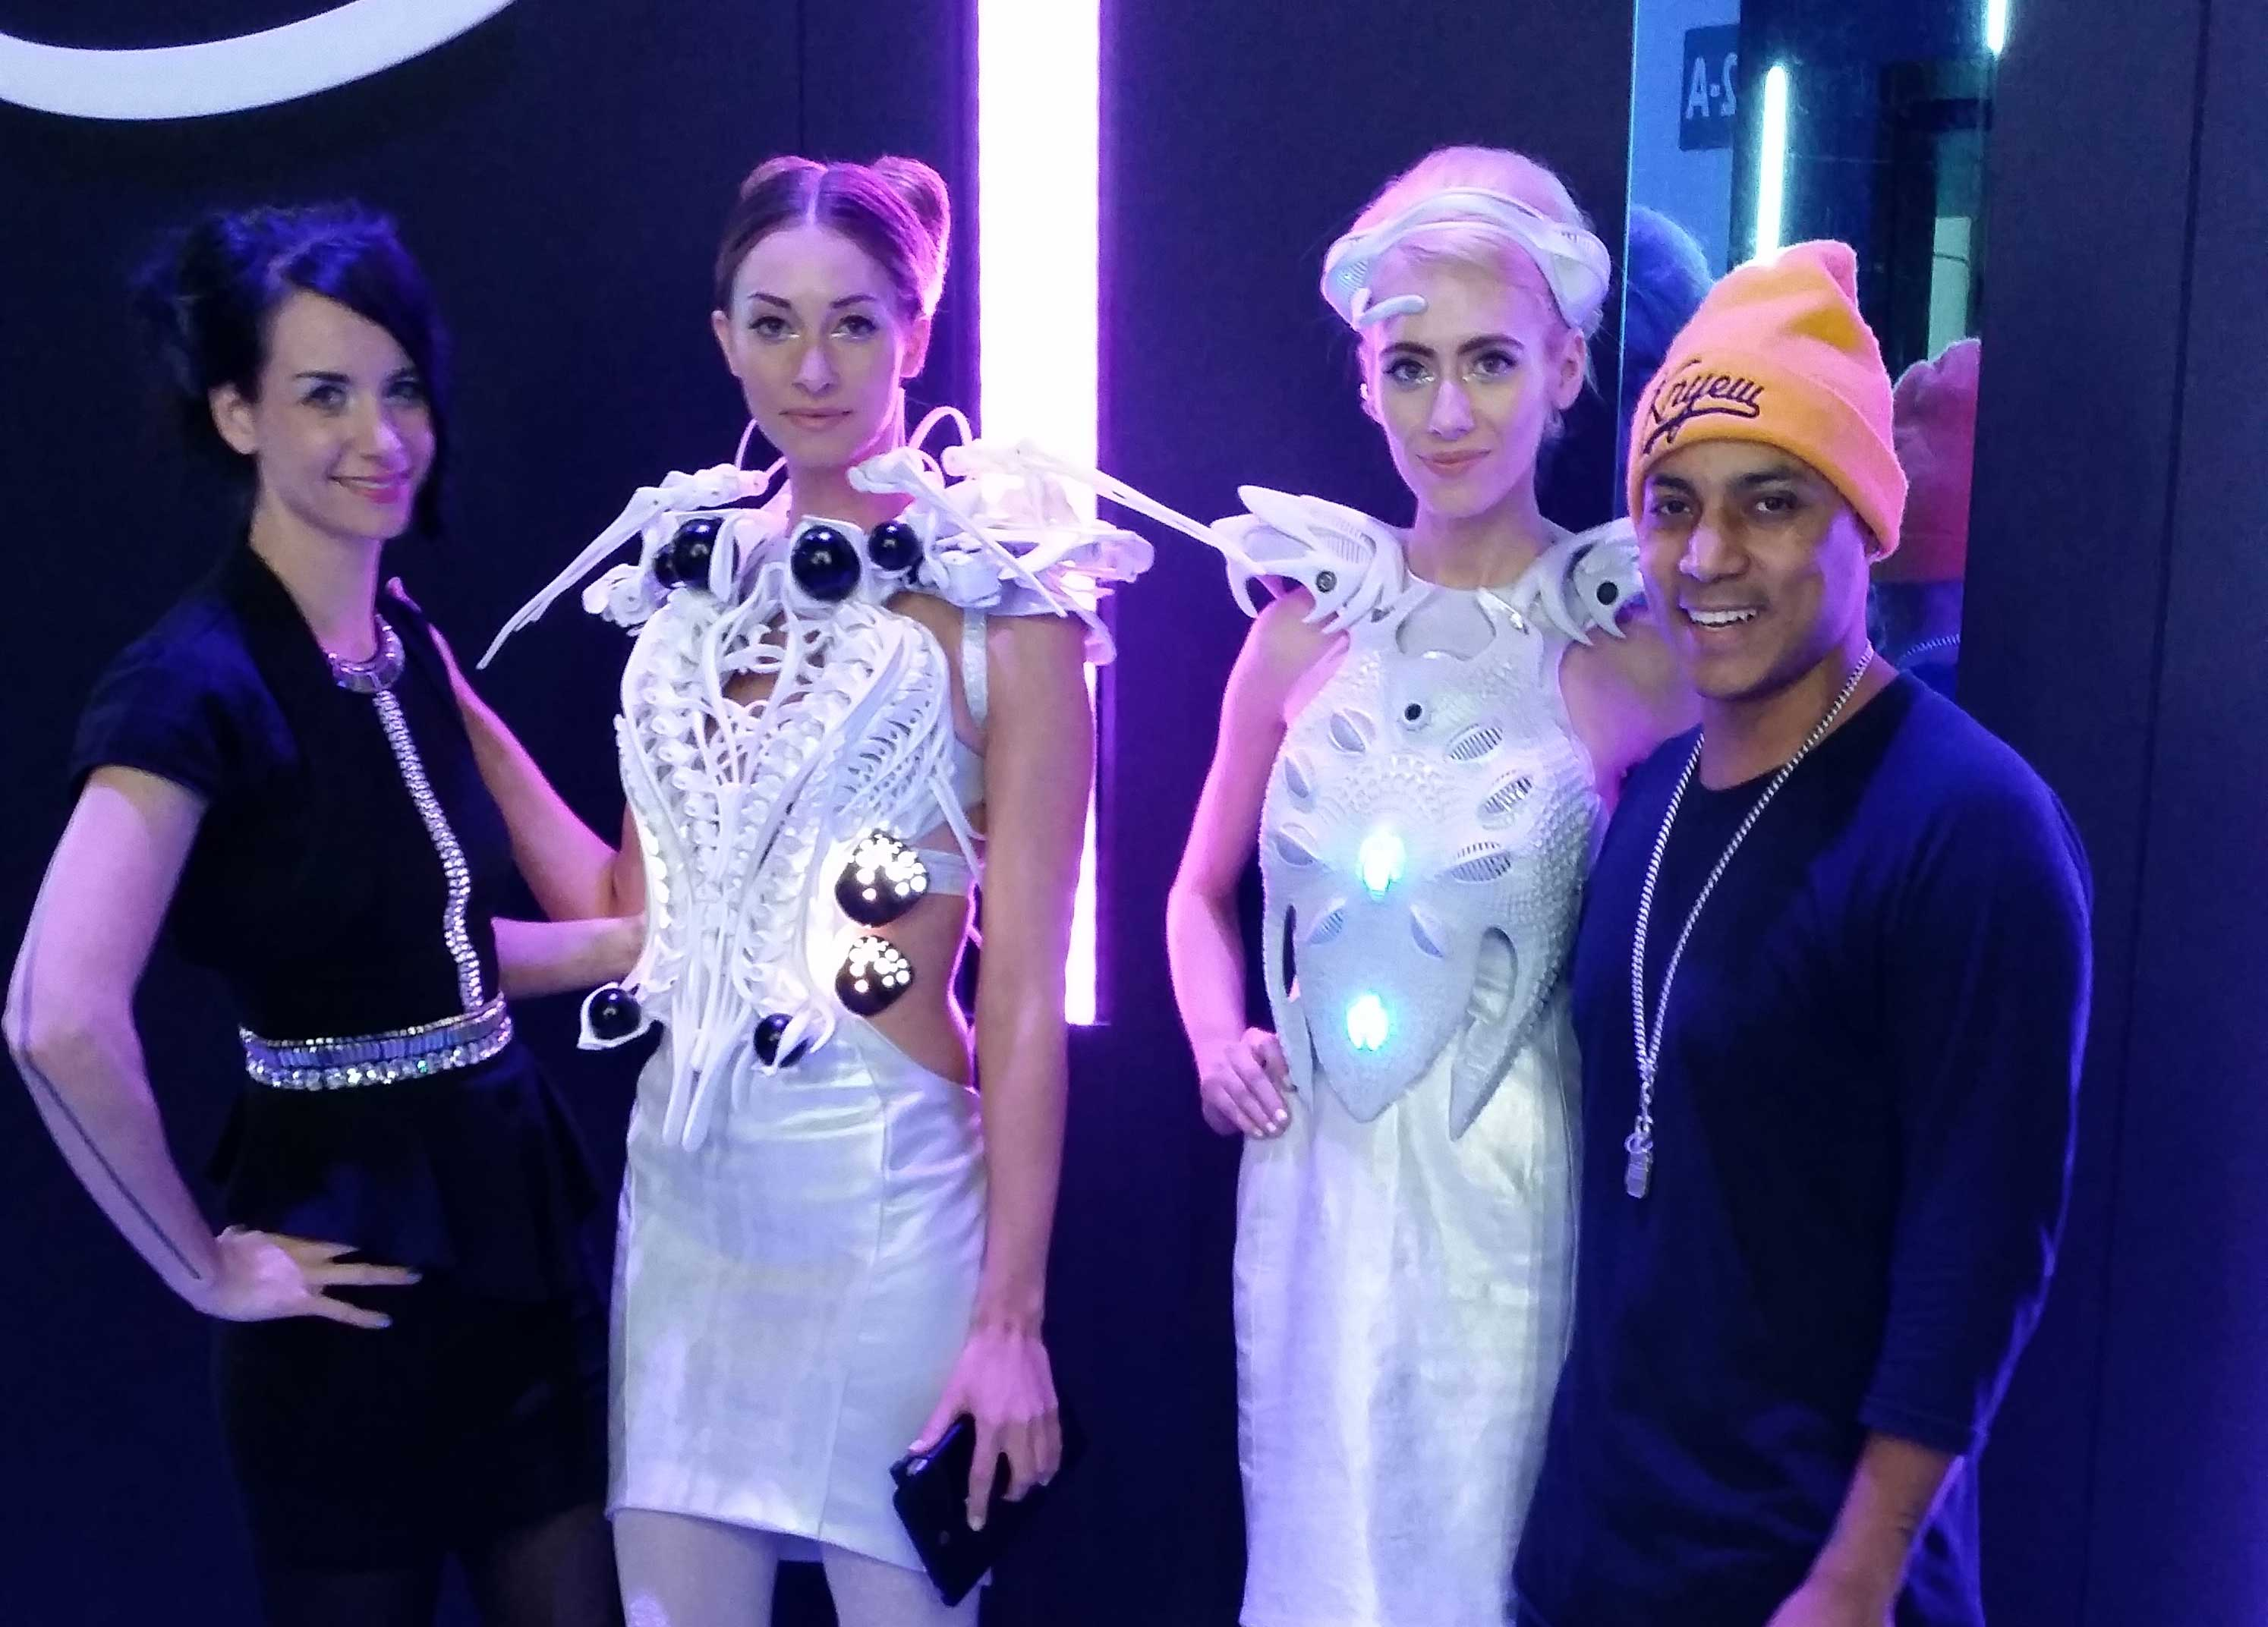 CES 2014 - Both dress designs by Anouk (Spider & Synapse Dresses)